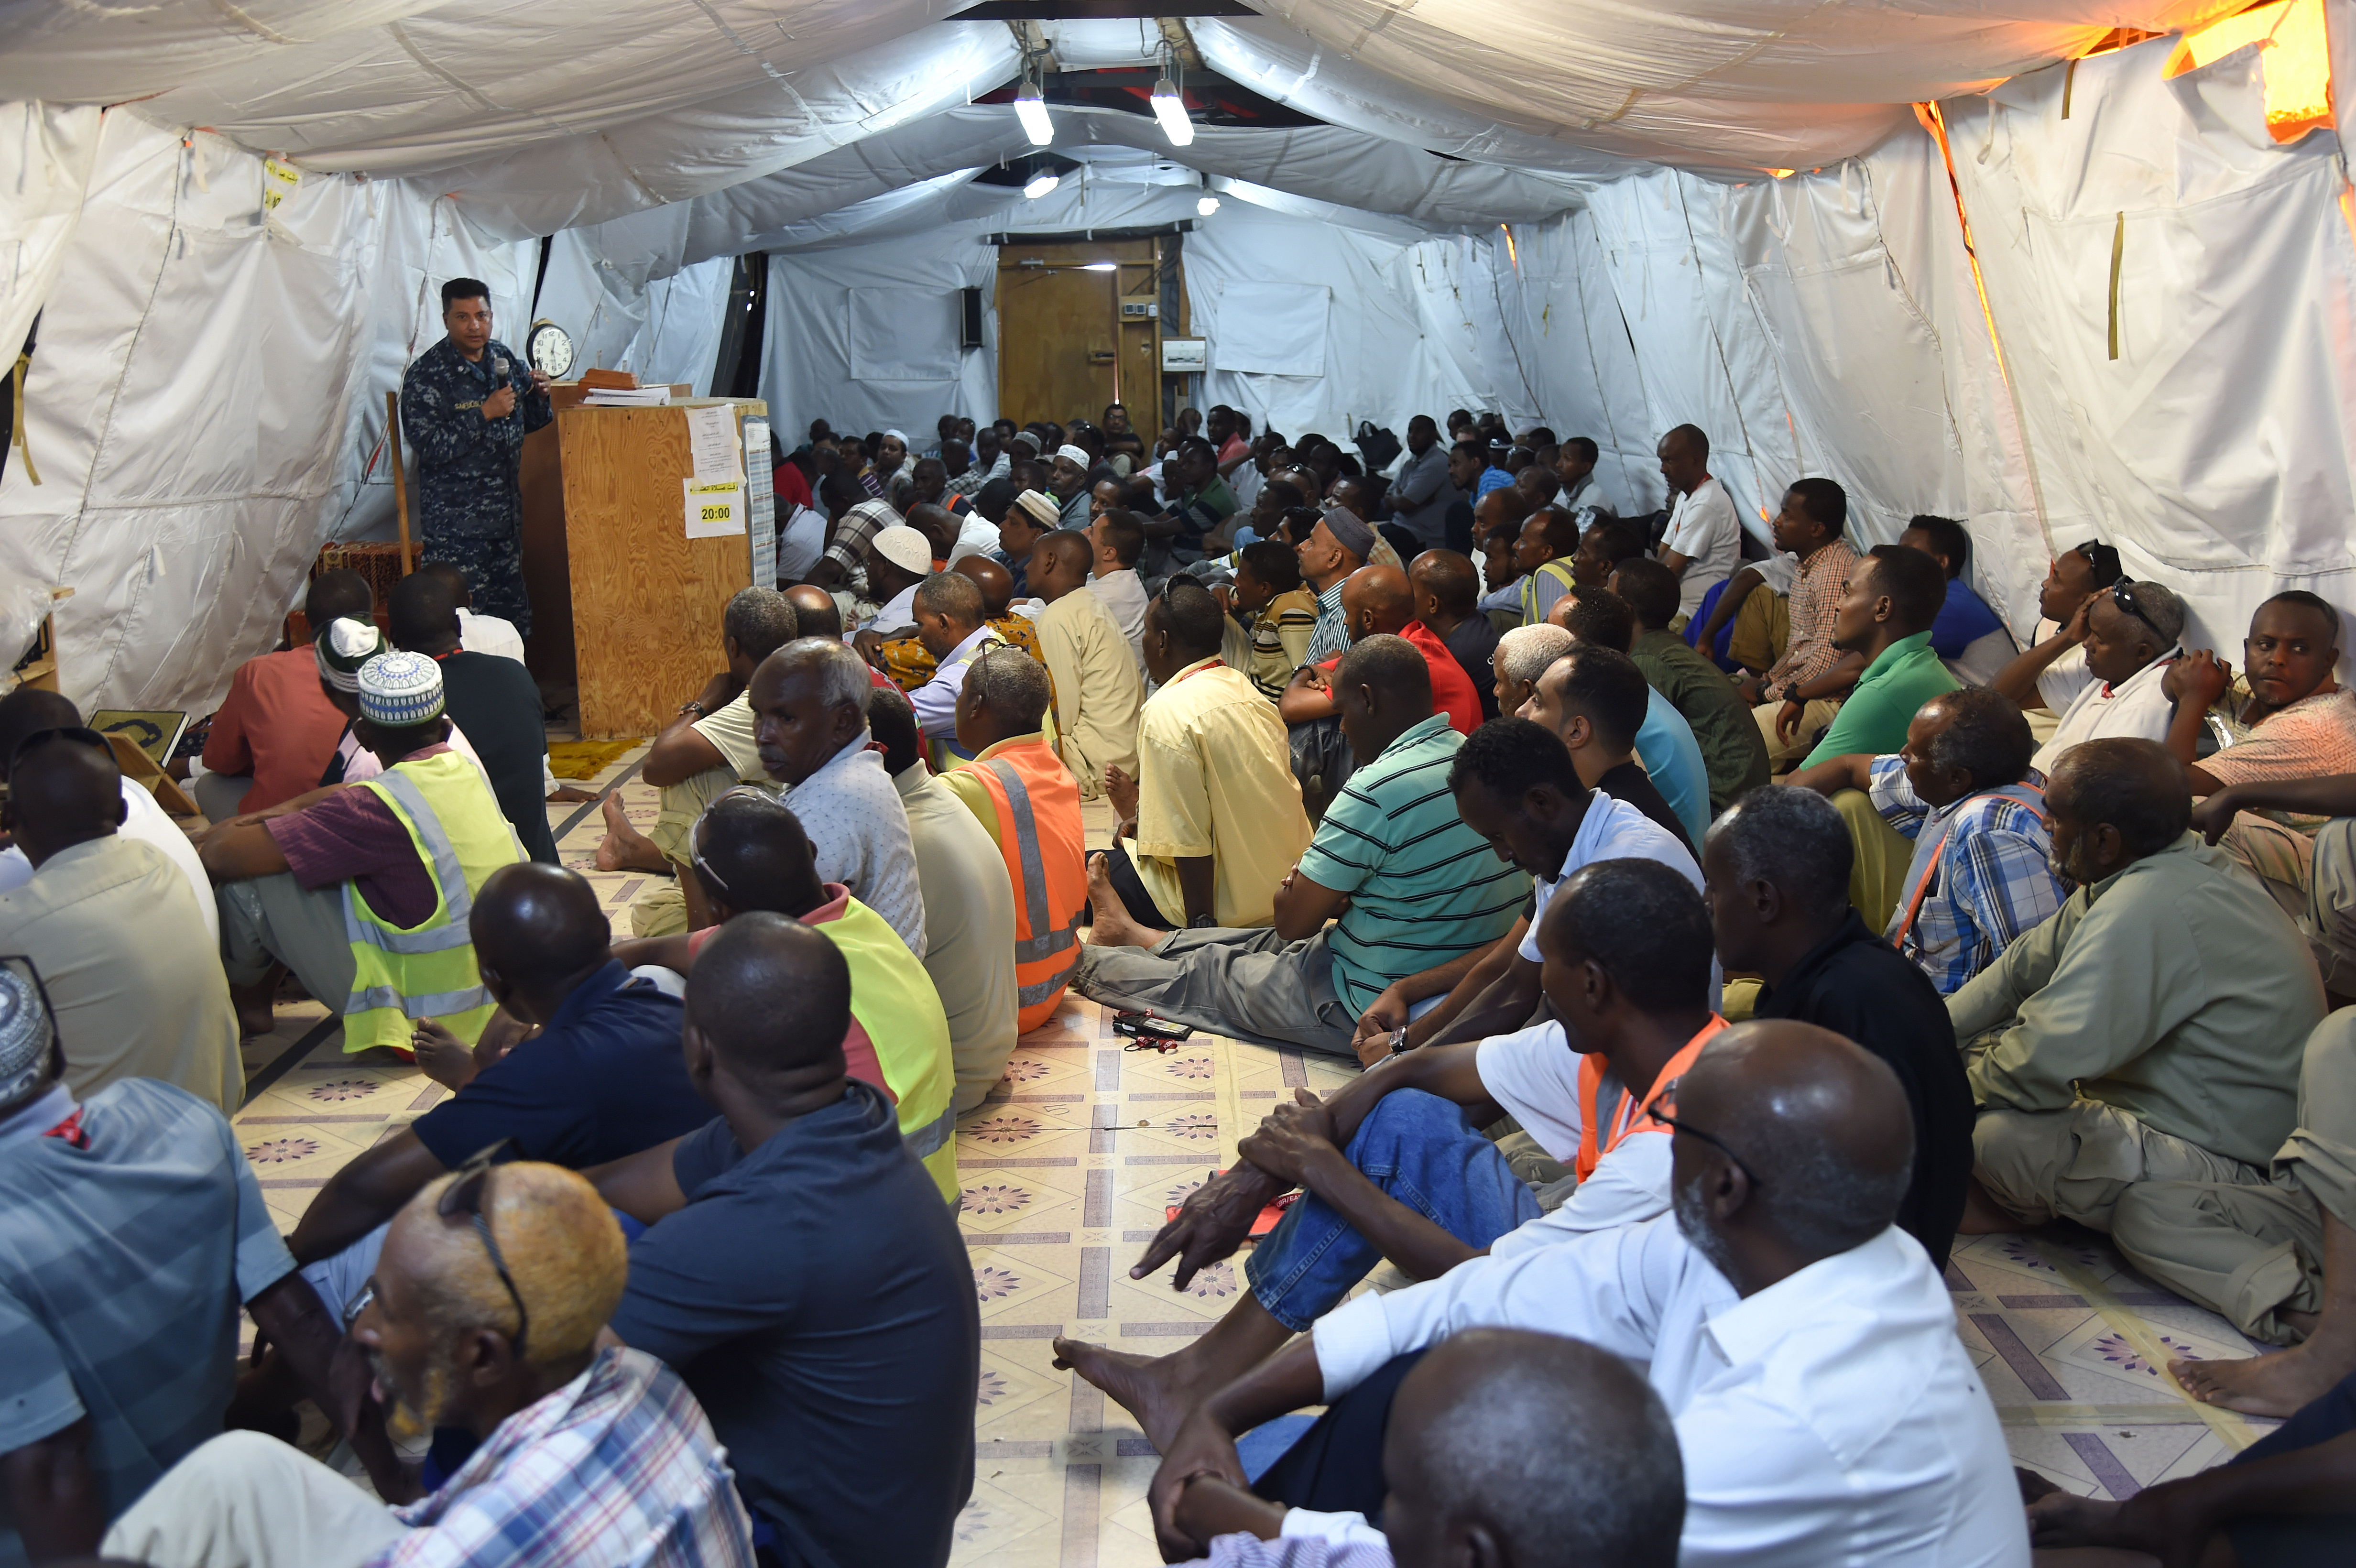 U.S. Navy Cmdr. Abuhena Saifulislam, deputy command chaplain for U.S. Africa Command, speaks to Muslim civilian employees during the Friday sermon at Mariama Bin't Imran Mosque in Camp Lemonnier, Djibouti, Jan. 30, 2017. A native of Bangladesh, Saifulislam became a naturalized U.S. citizen in 1995, was commissioned in 1999 as the first Muslim chaplain for the U.S. Marine Corp, and is currently one of only two Imam Chaplains in the U.S. Navy. (U.S. Air National Guard photo by Master Sgt. Paul Gorman)